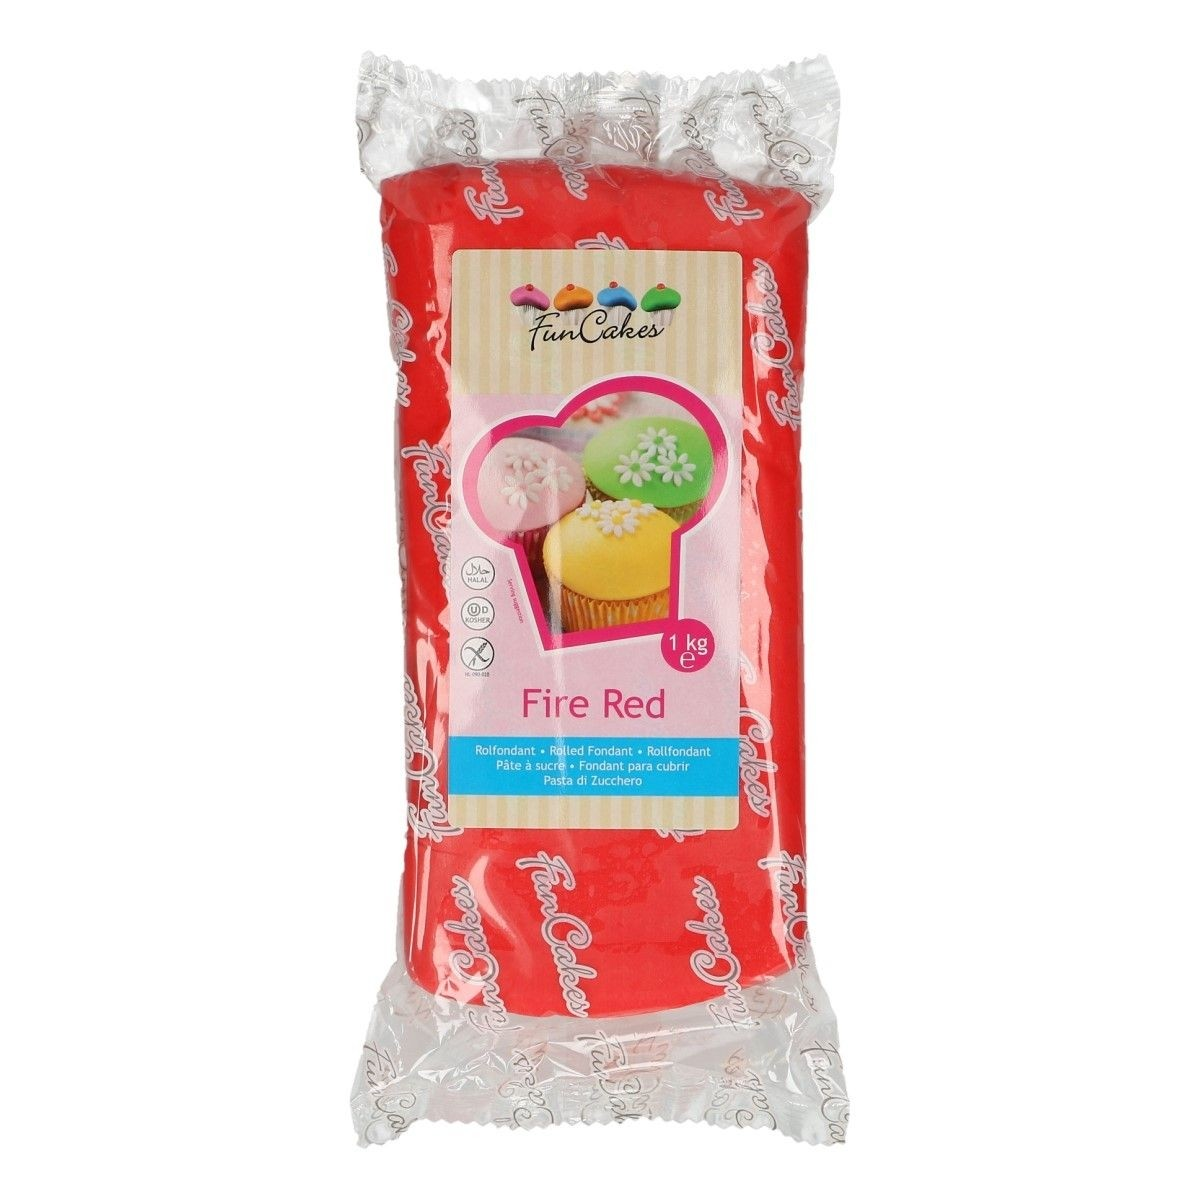 FunCakes Rolfondant -Fire Red- -1kg-